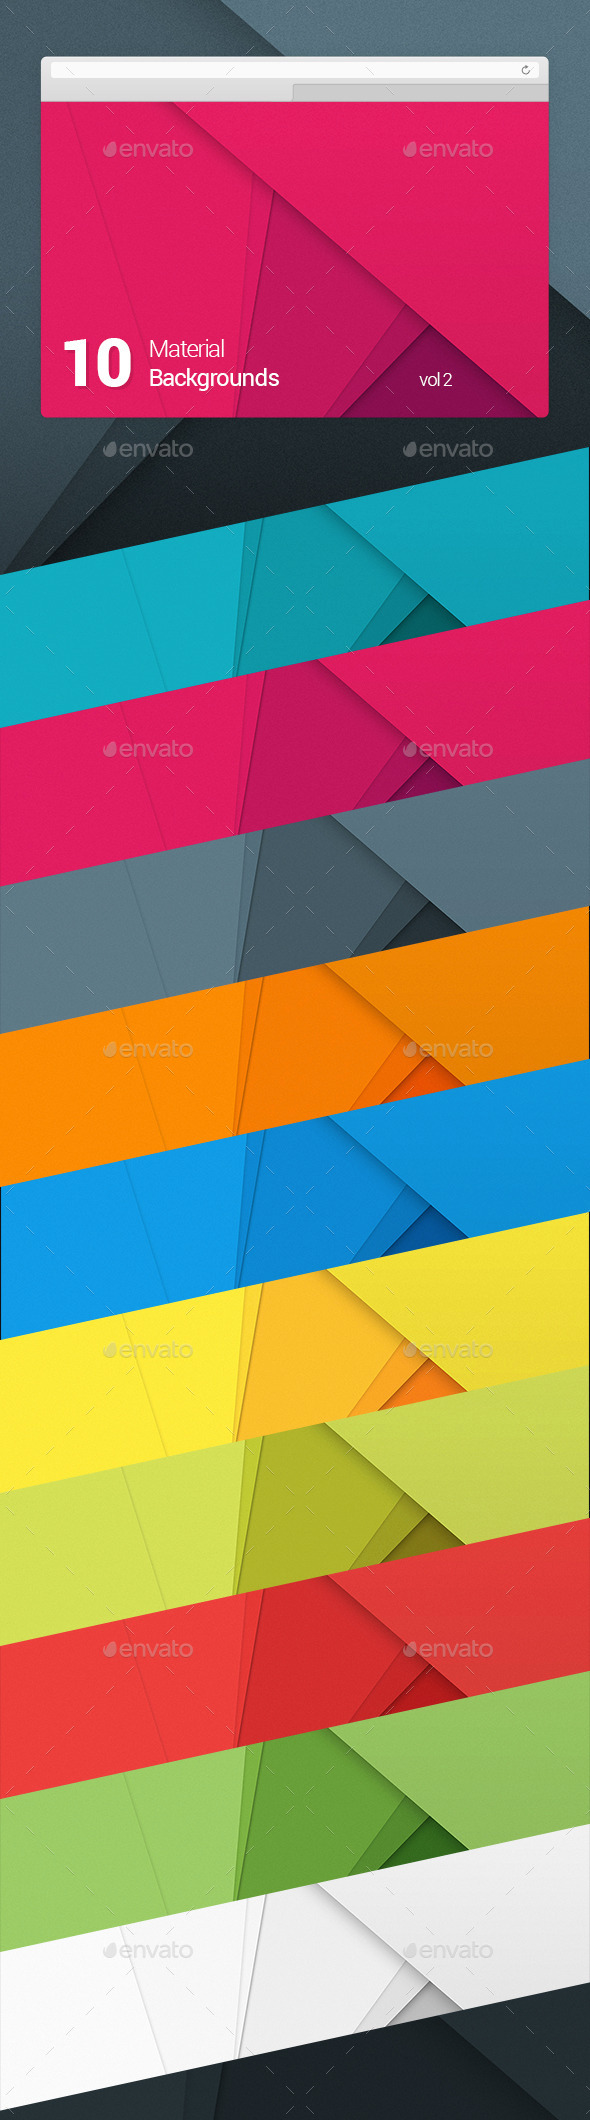 10 Material Design Backgrounds Vol 2 - Abstract Backgrounds